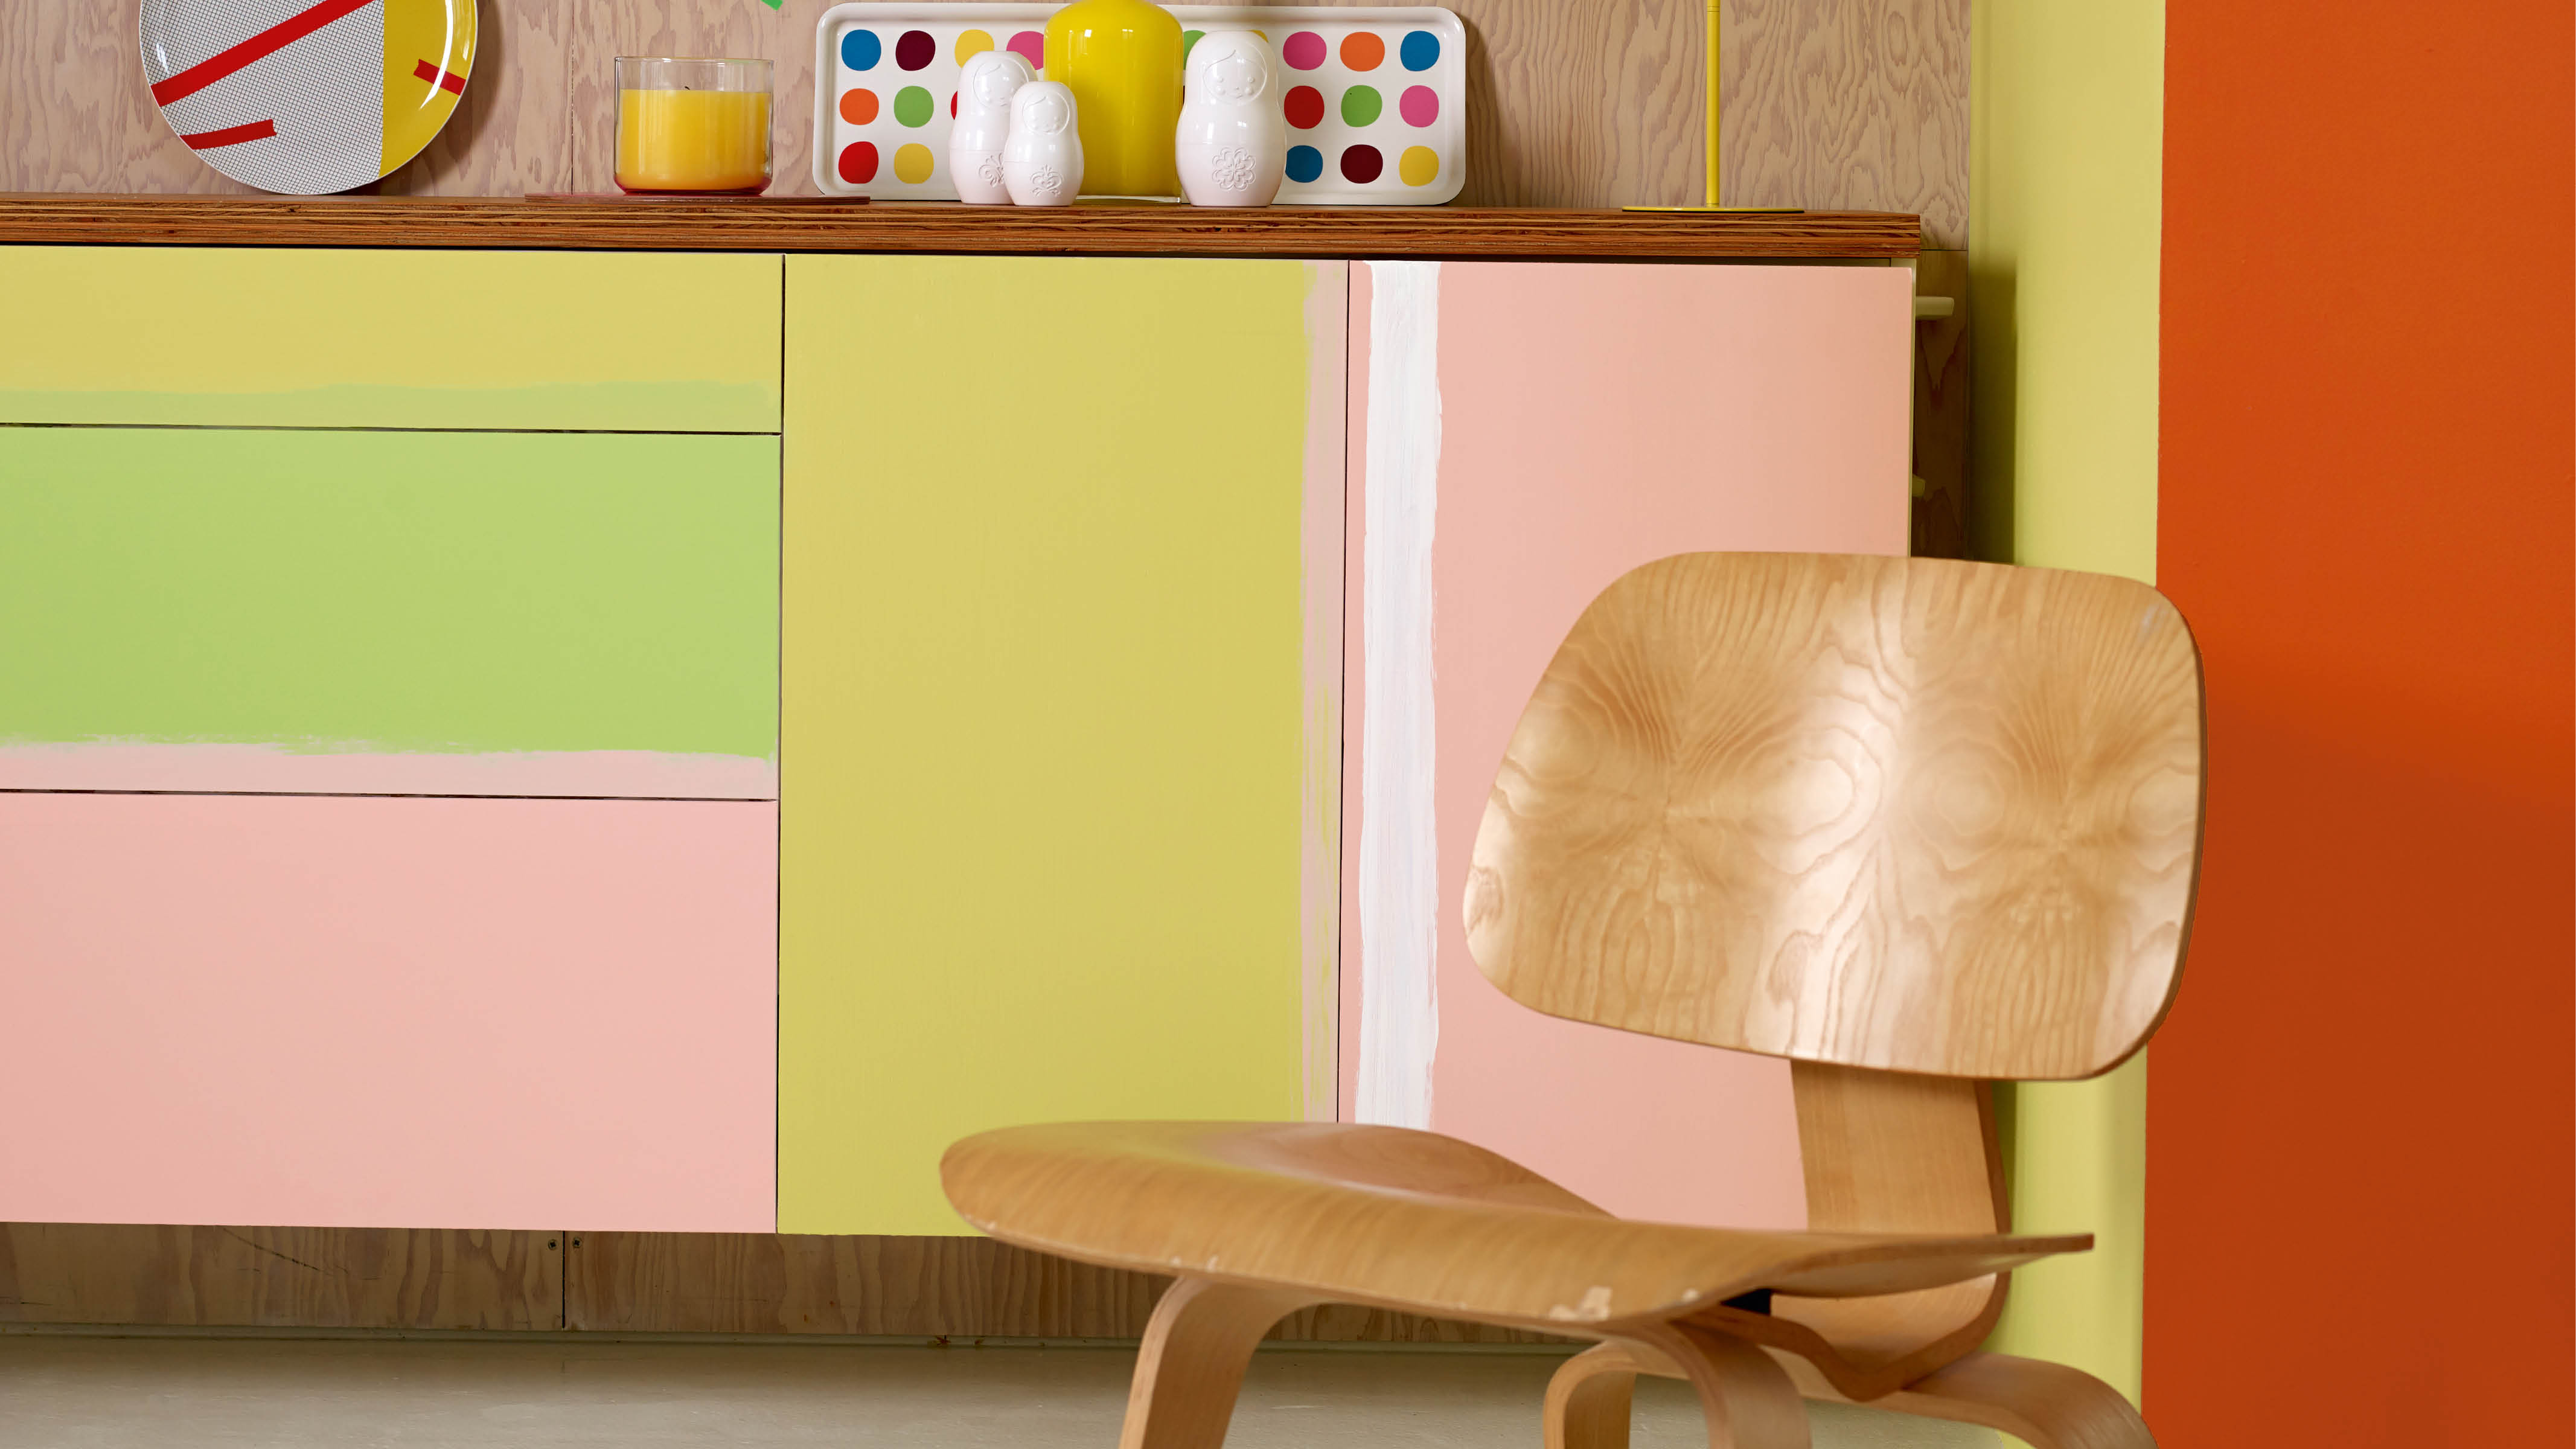 Leftover paint can be used to customise your furniture.